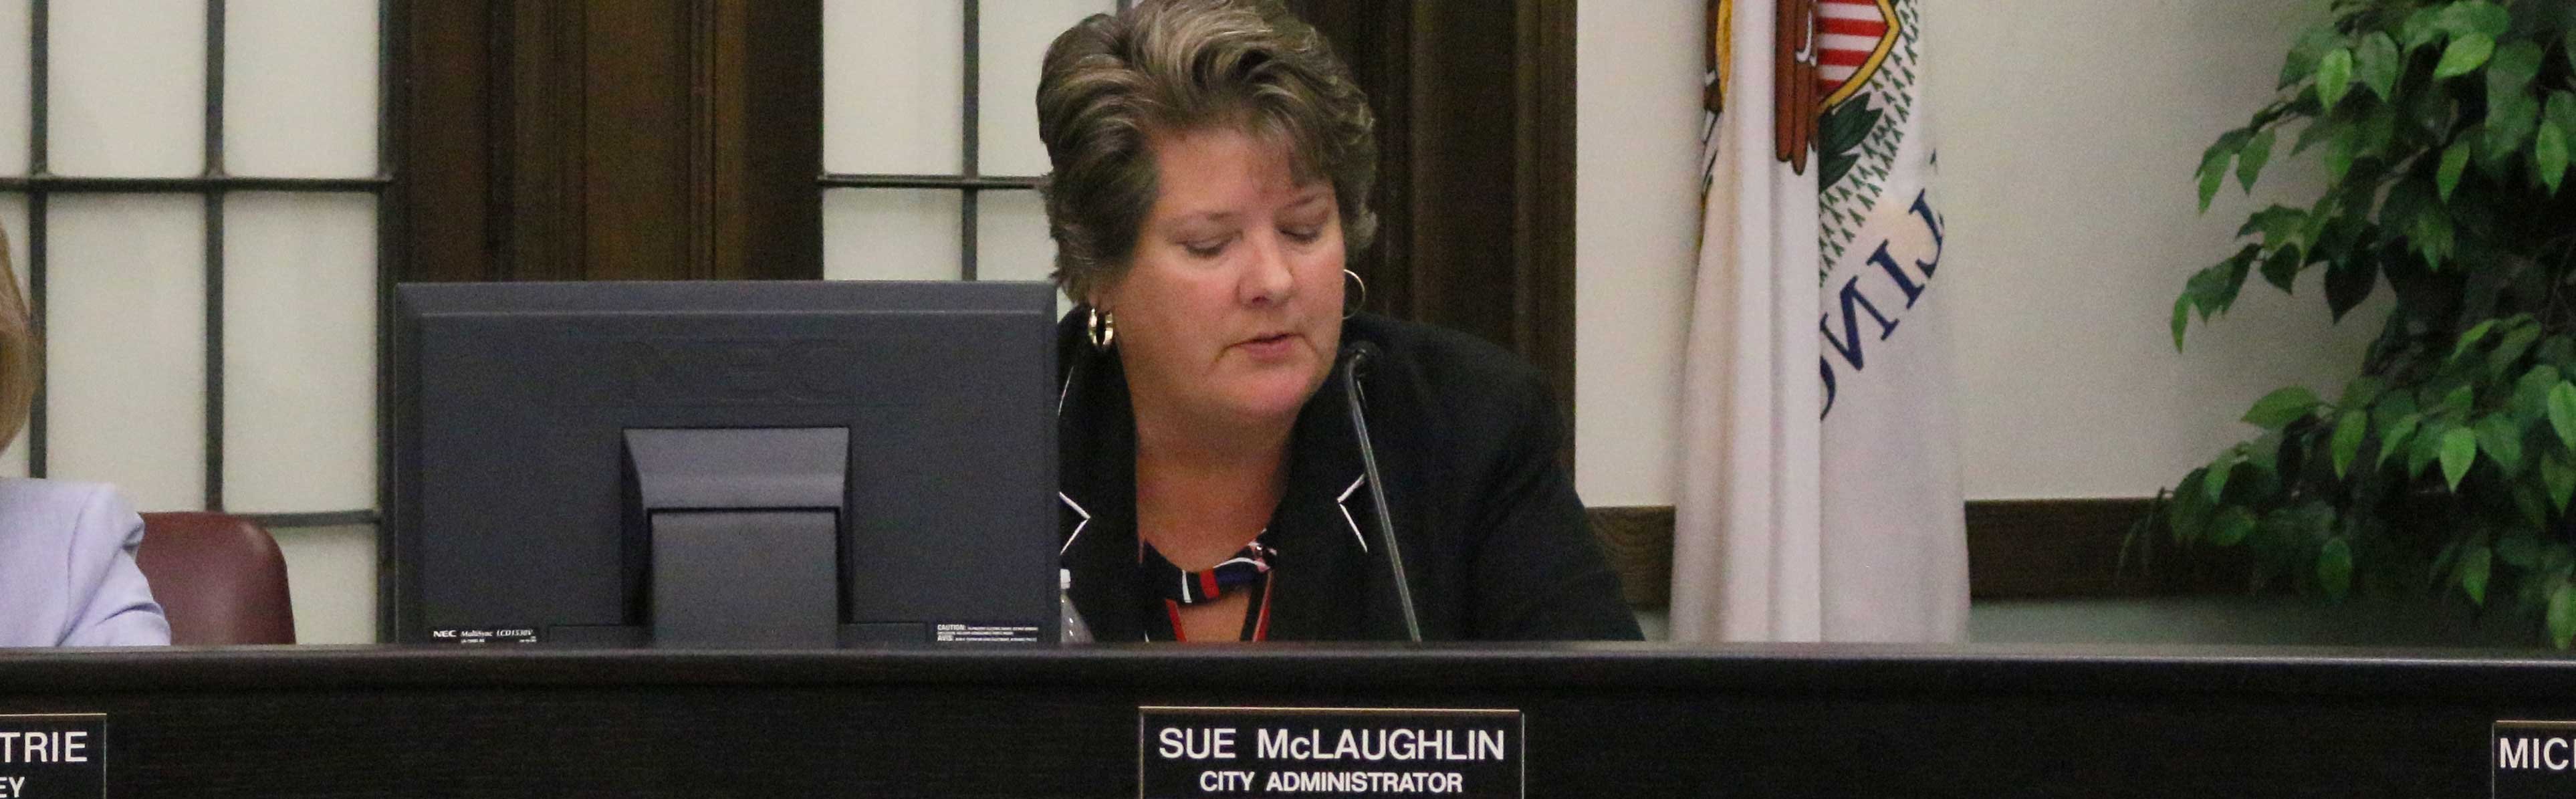 "City Administrator Sue McLaughlin will be leaving Macomb following a ""mutual agreement"" to end her contract with the city."